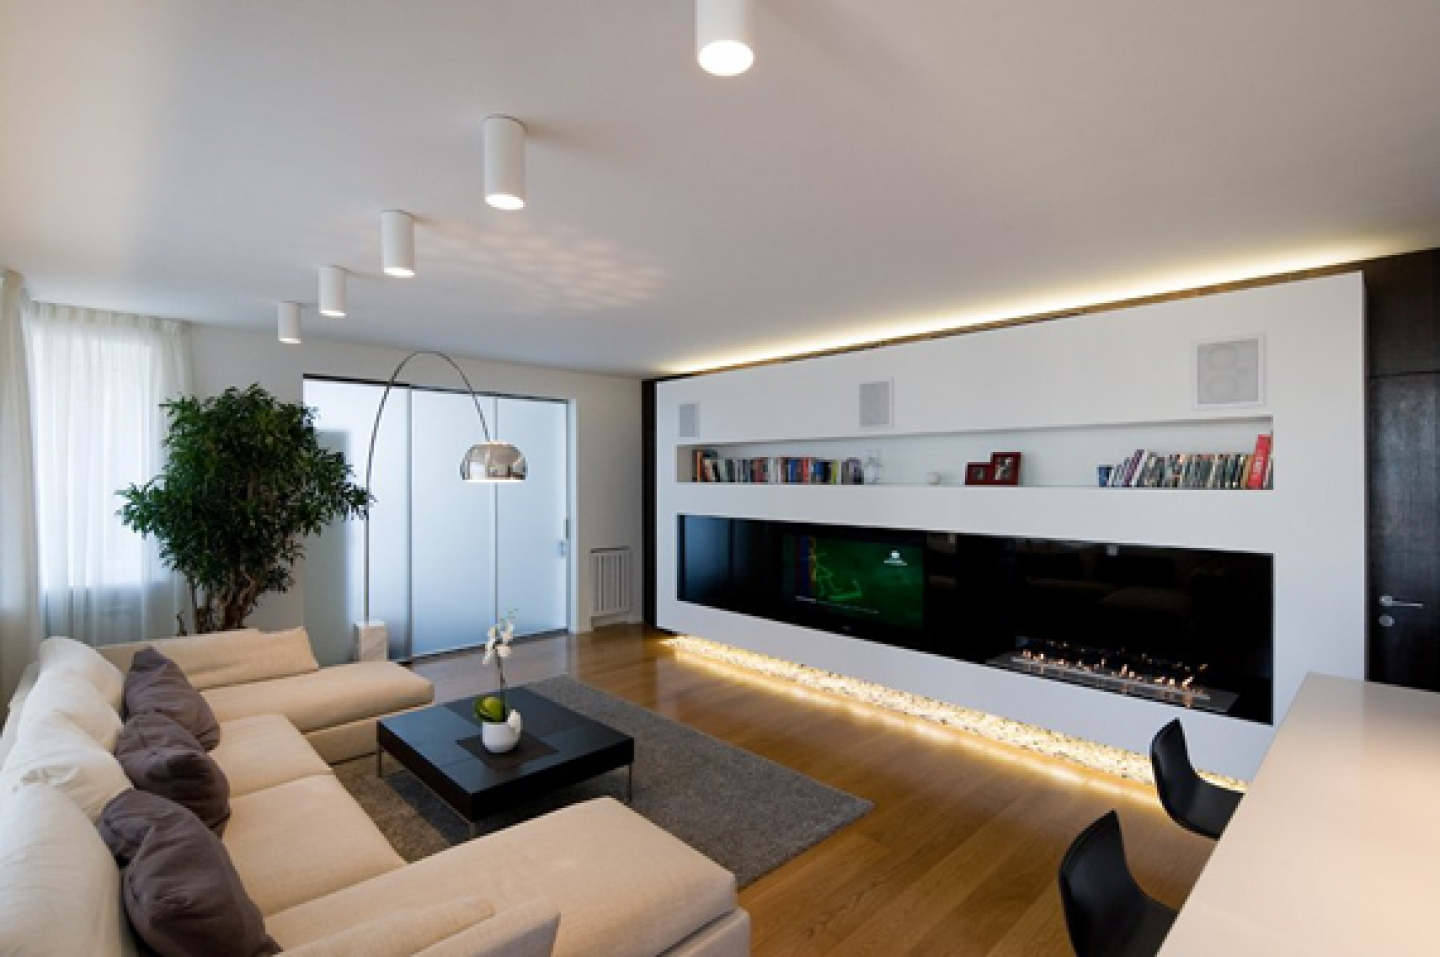 How To Find Useful and Simple Tips For Decorating Your Living Room